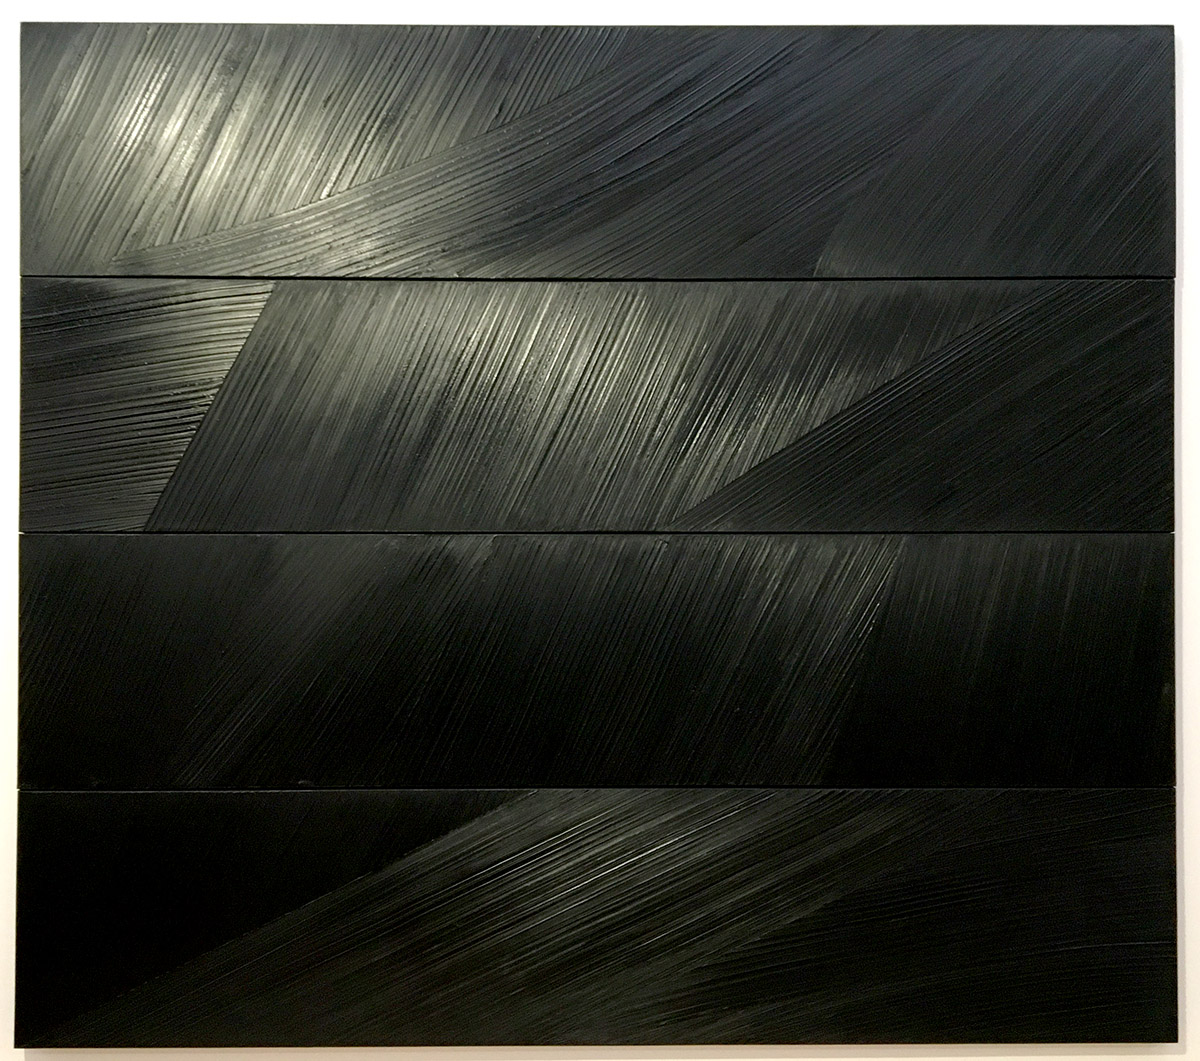 Pierre Soulages - Painting, oil on canvas